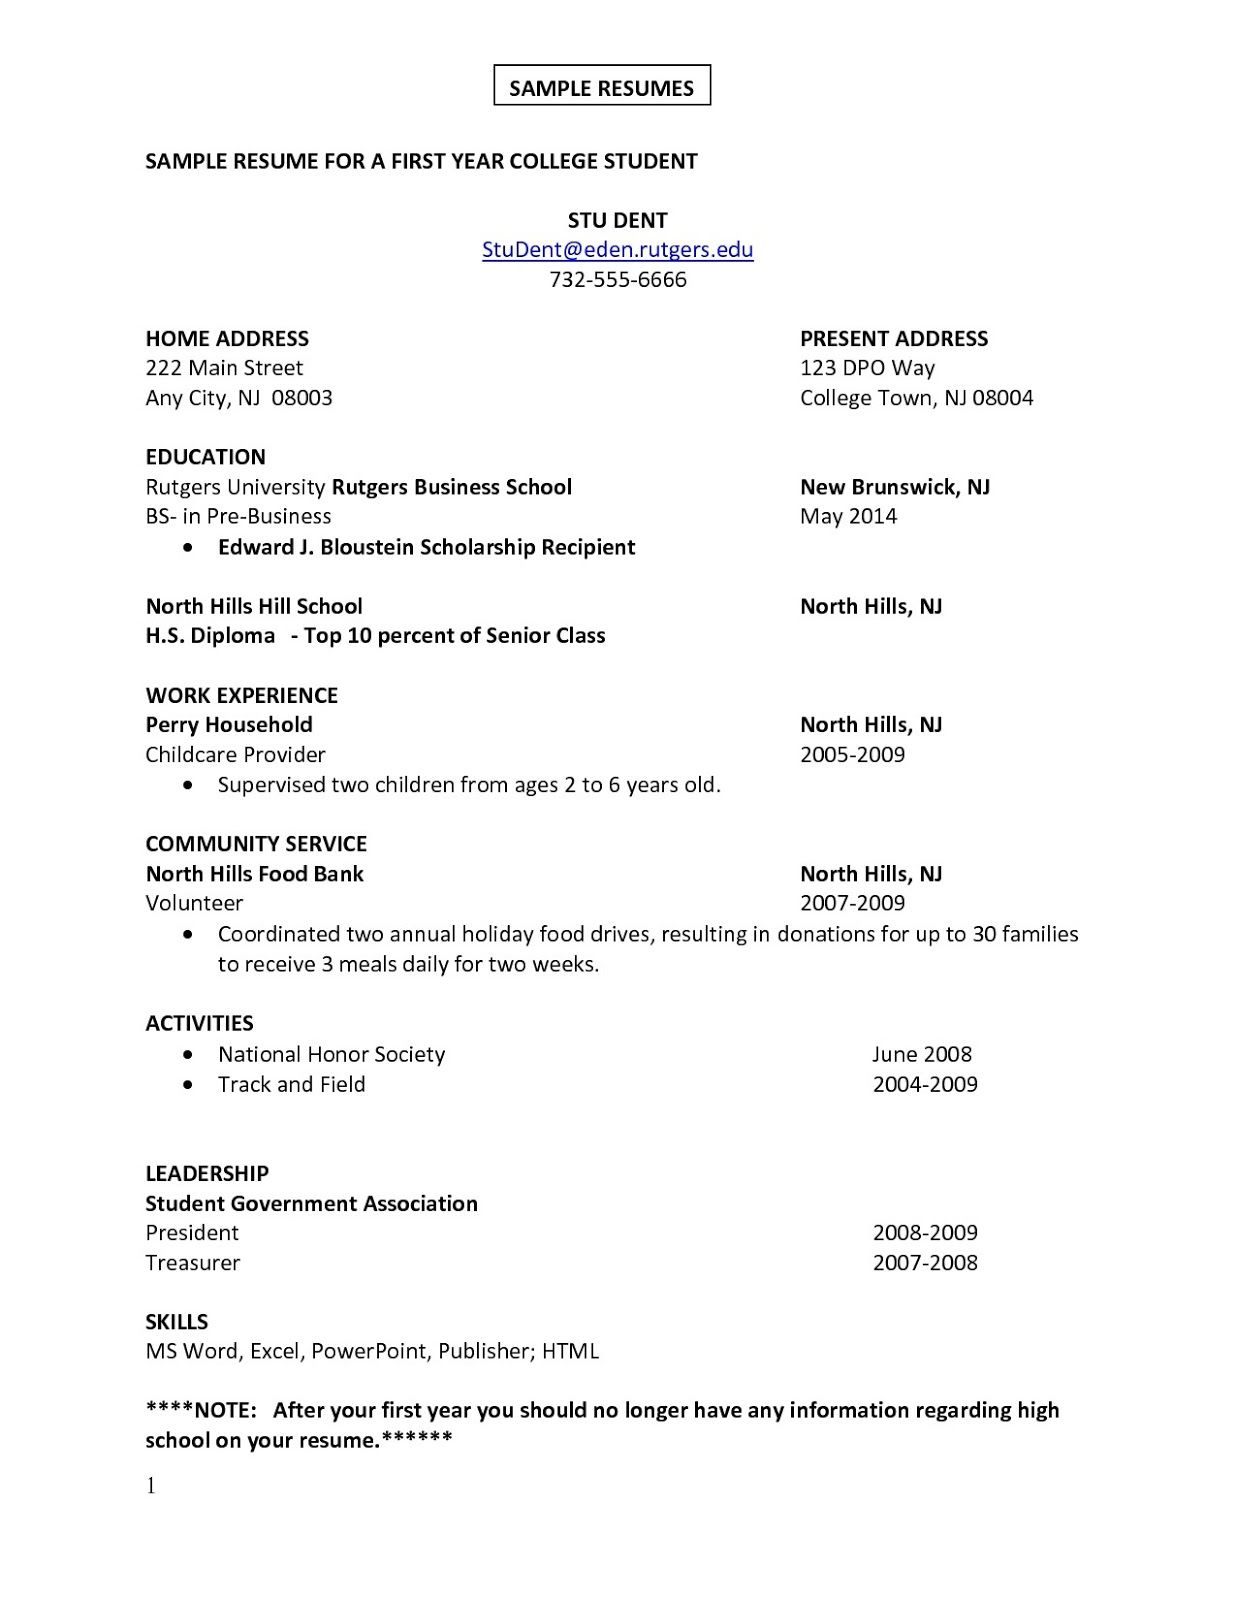 First job sample resume sample resumes sample resumes for First time job resume for high school student